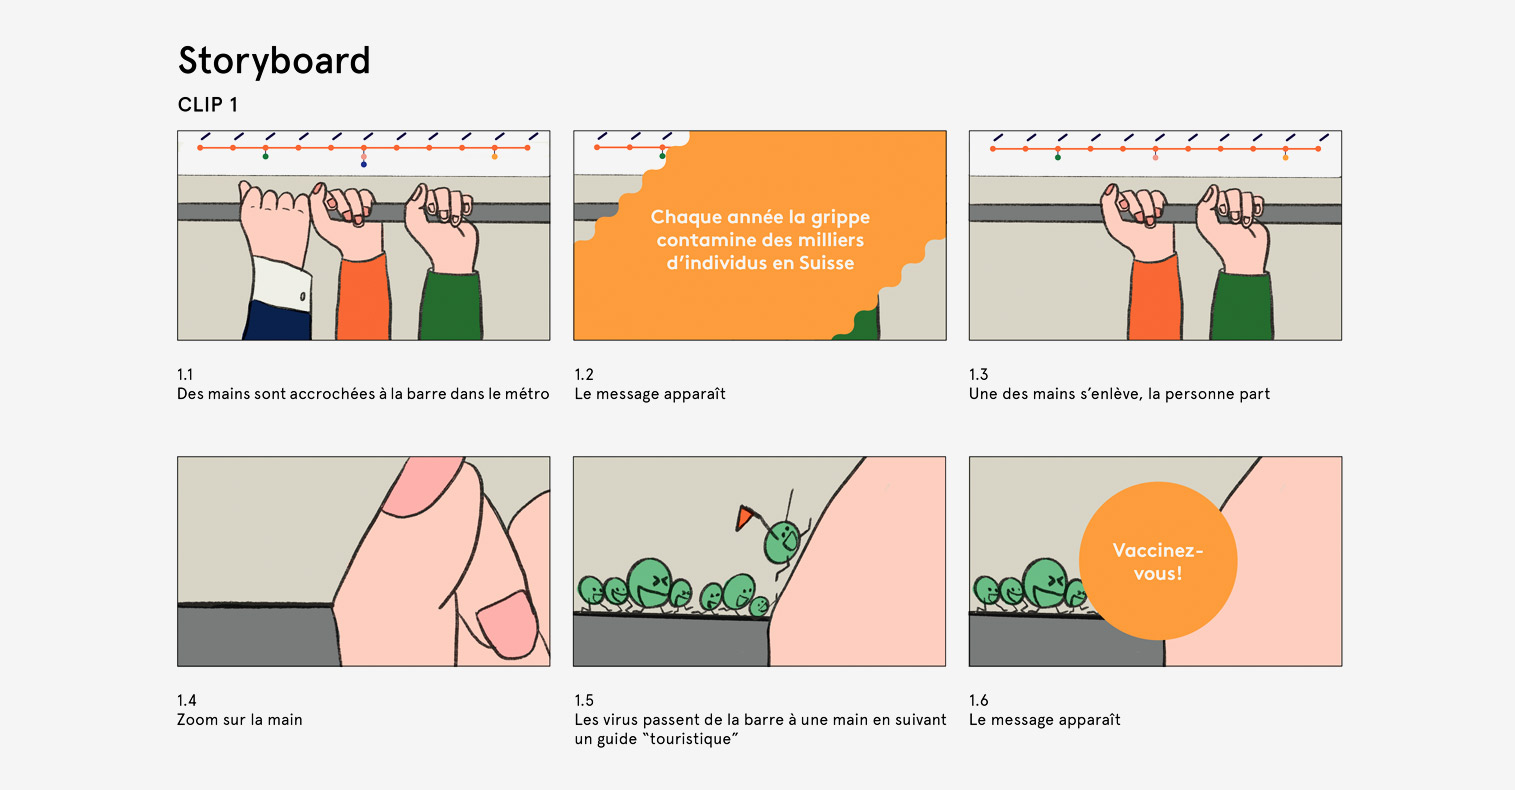 storyboard-flu-vaccination-campaign-01